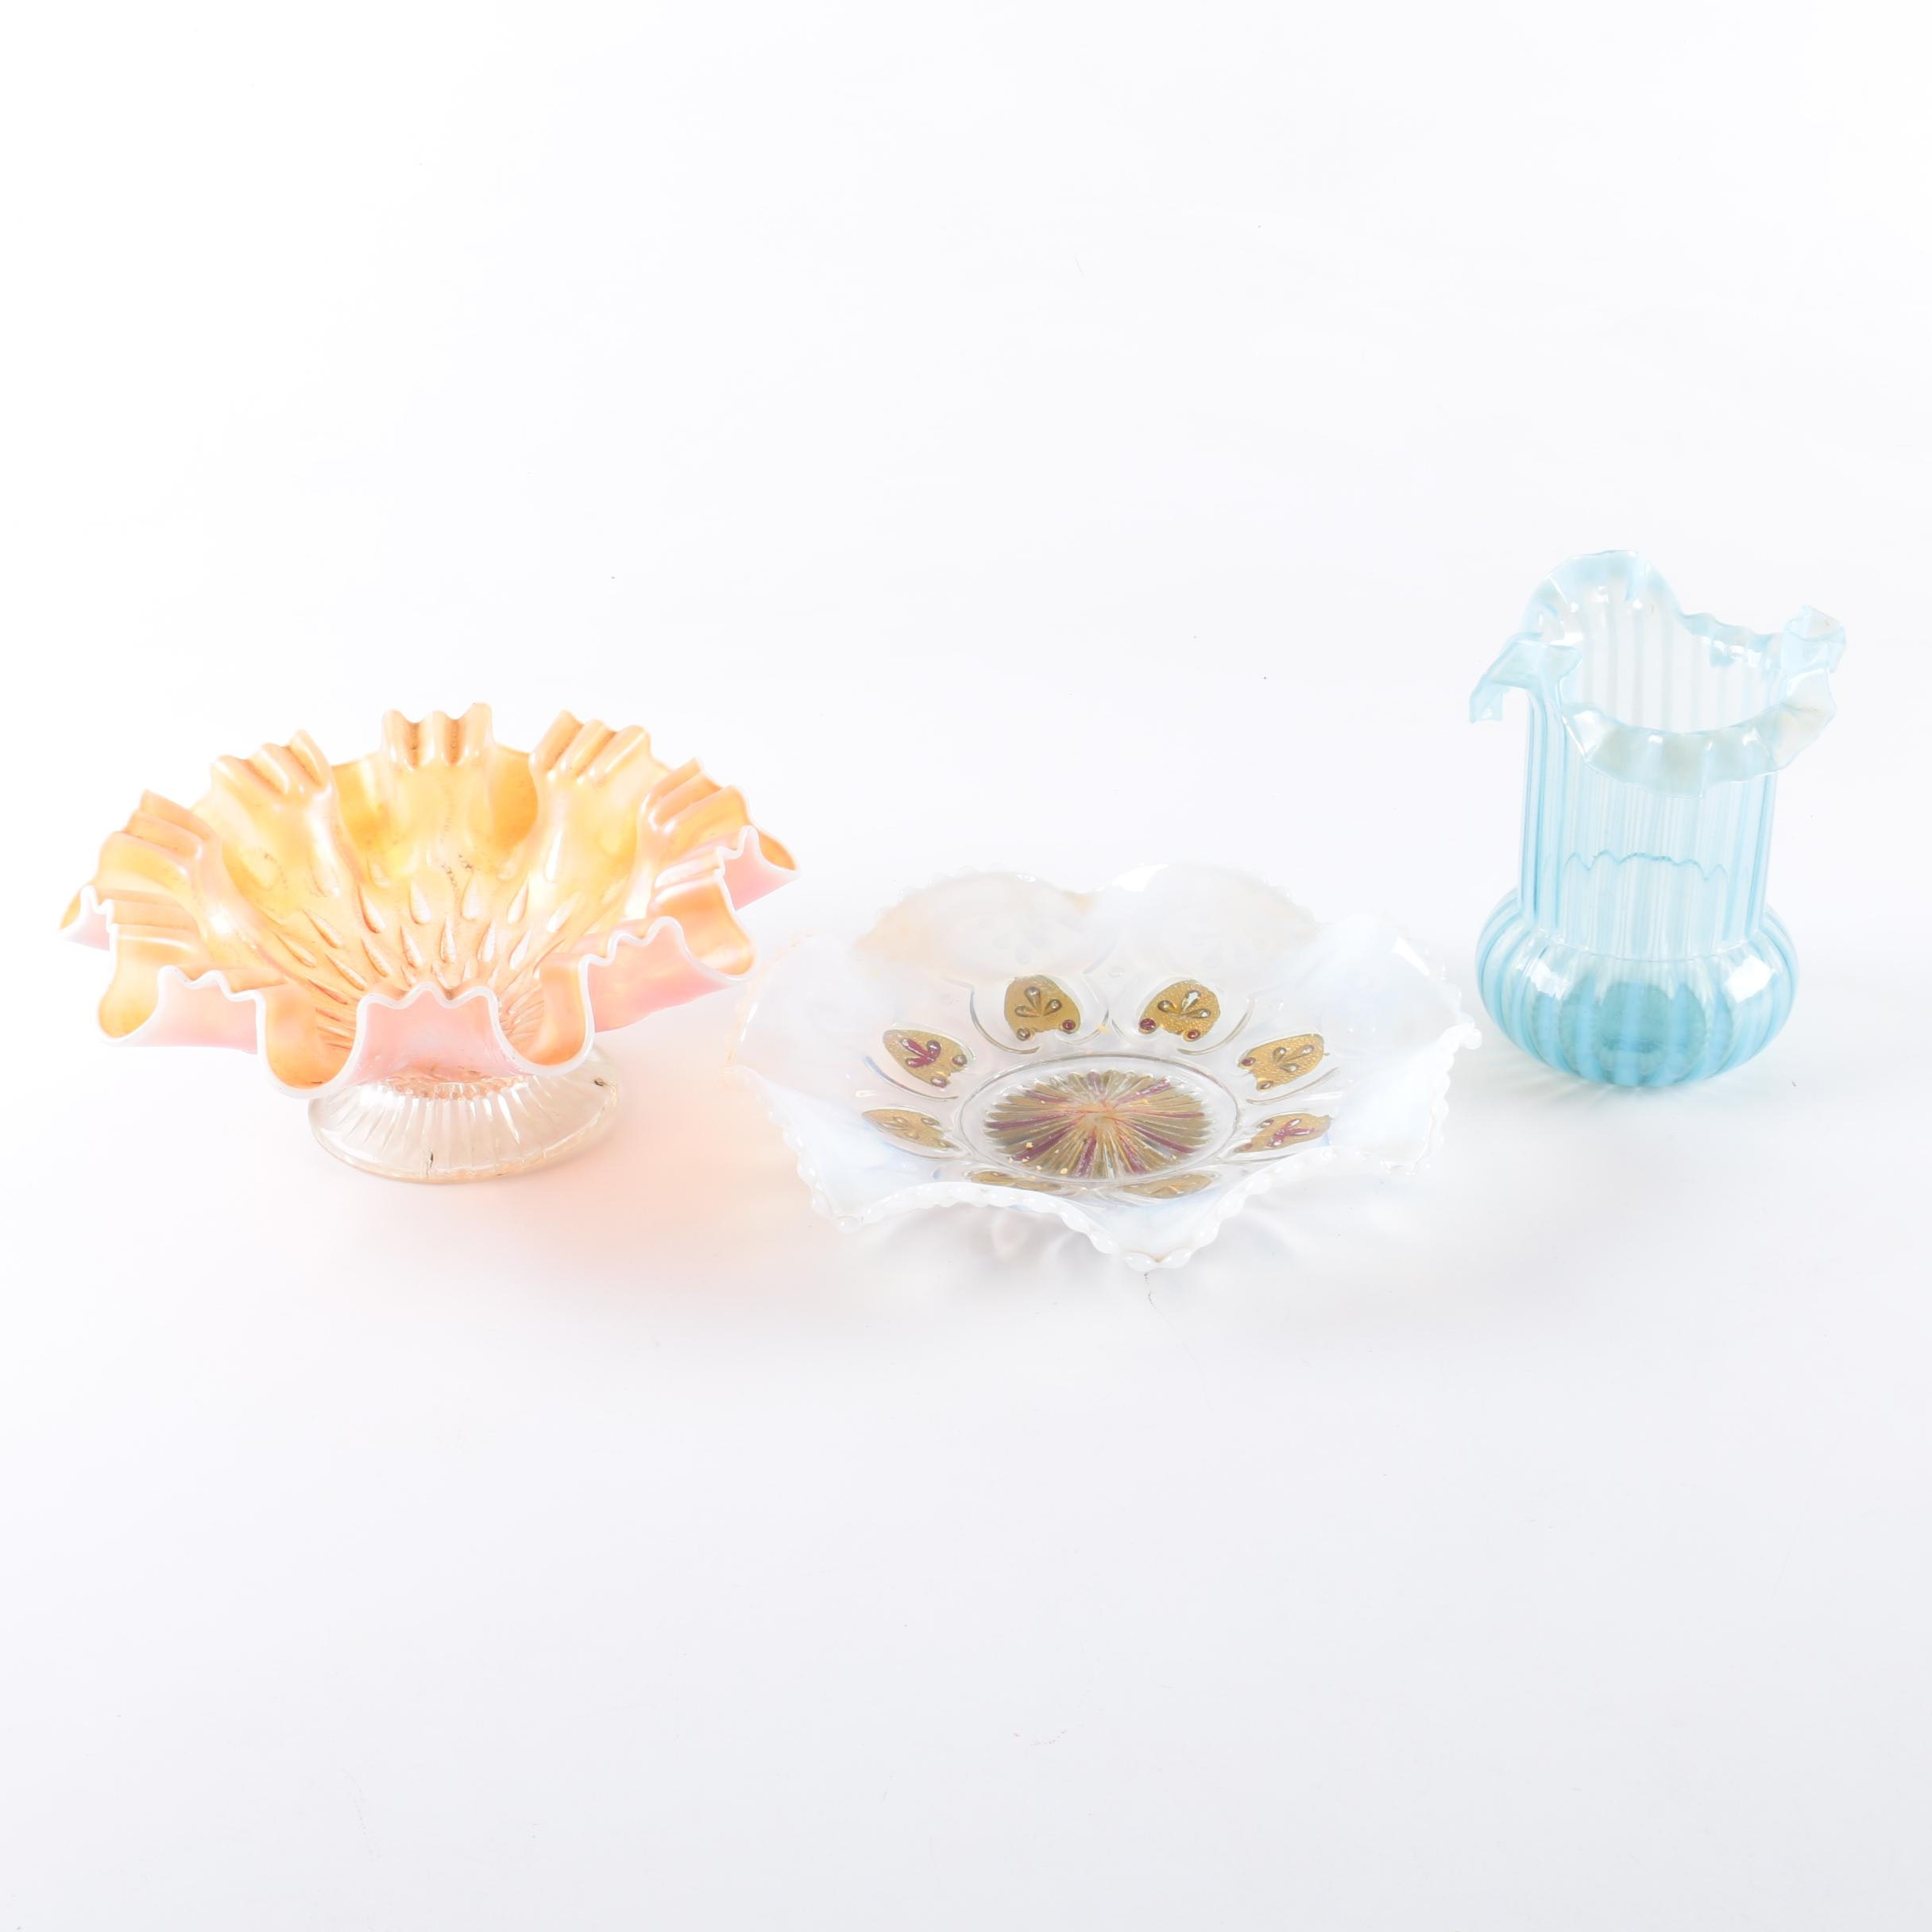 Depression Glass Opalescent Bowls and Blue Striped Vase